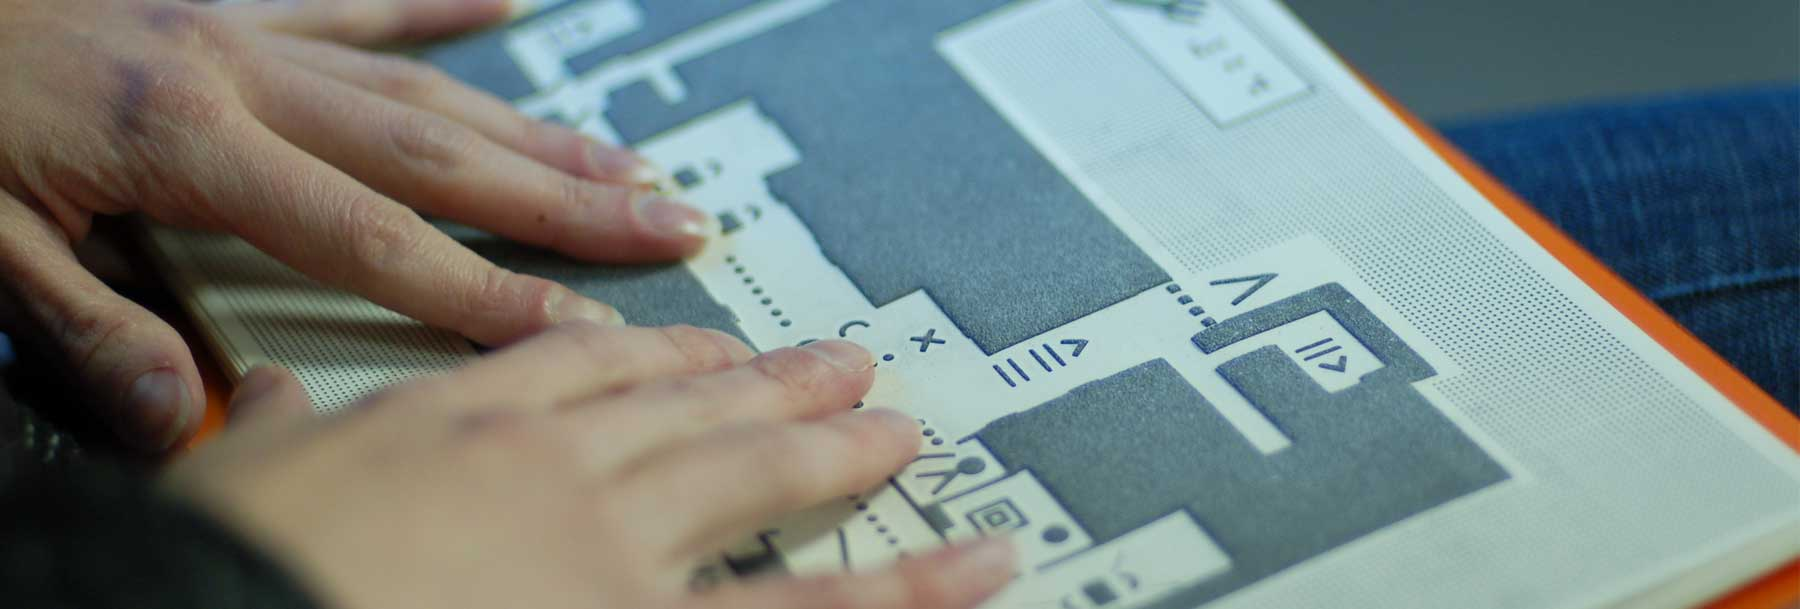 tactile_map-2